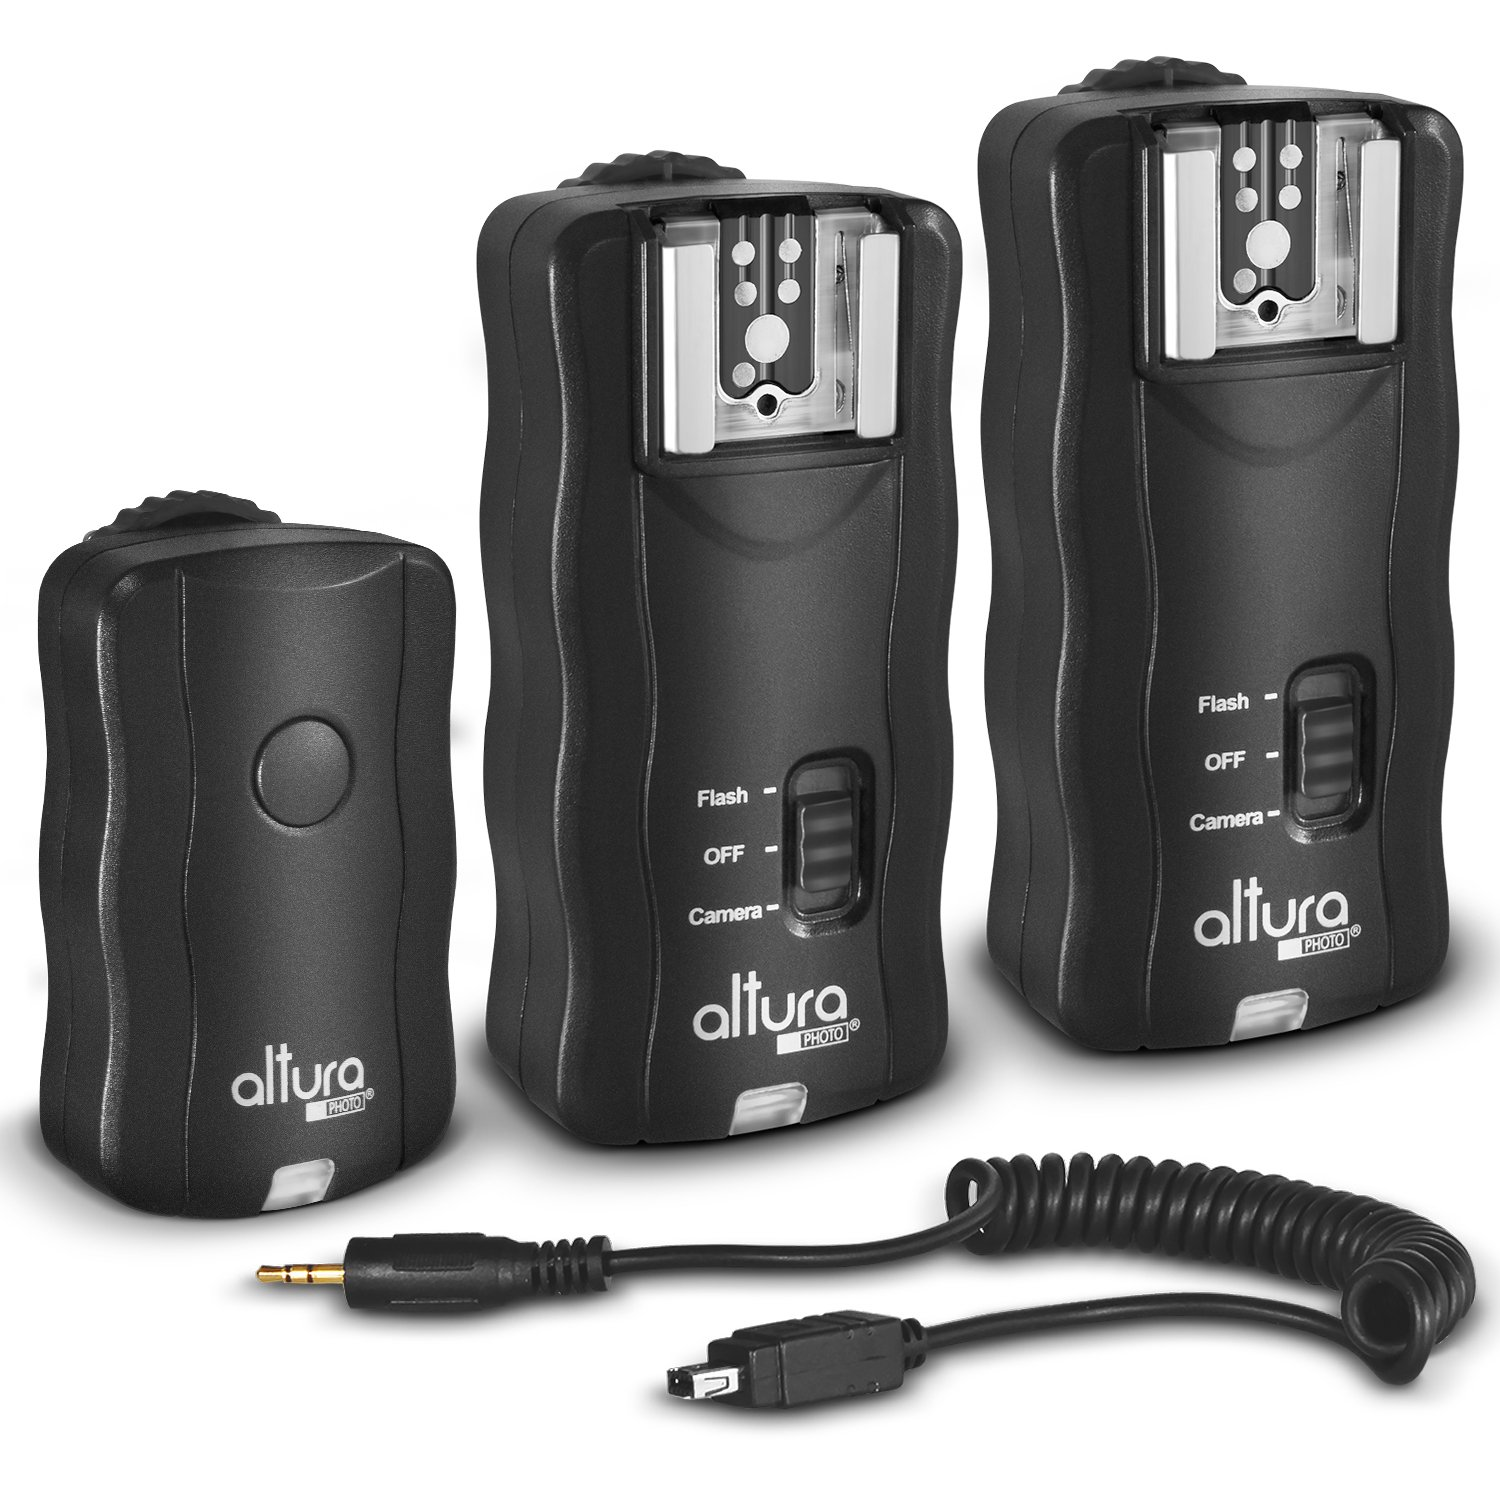 (2 Trigger Pack) Altura Photo Wireless Flash Trigger for Nikon w/Remote Shutter Release (Nikon DF D3100 D3200 D3300 D5100 D5200 D5300 D7100 D7500 D610 D750 D500 D5 DSLR Cameras) by Altura Photo